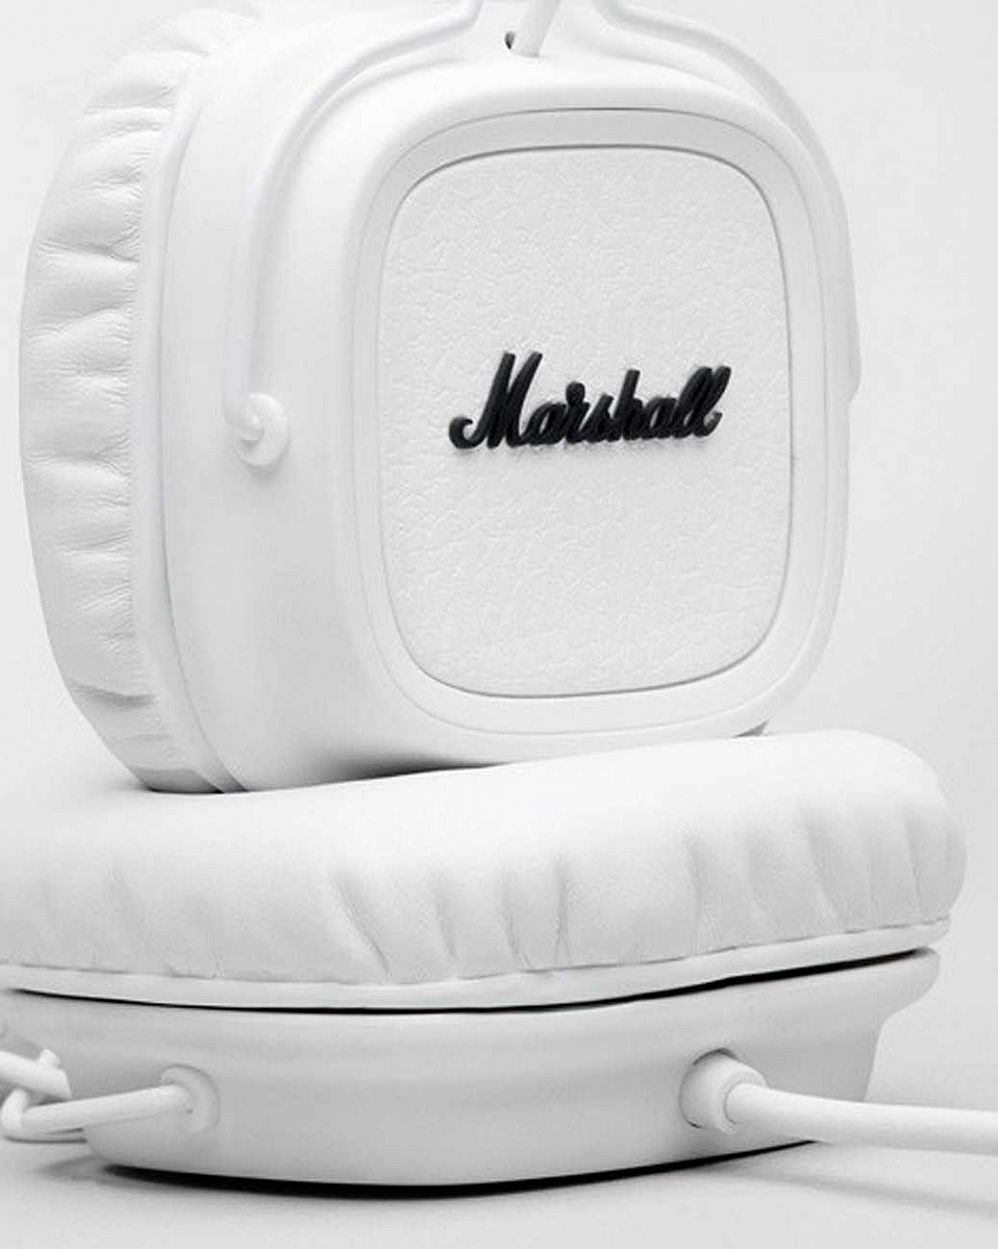 Наушники Marshall Headphones (major) White Foto отзывы